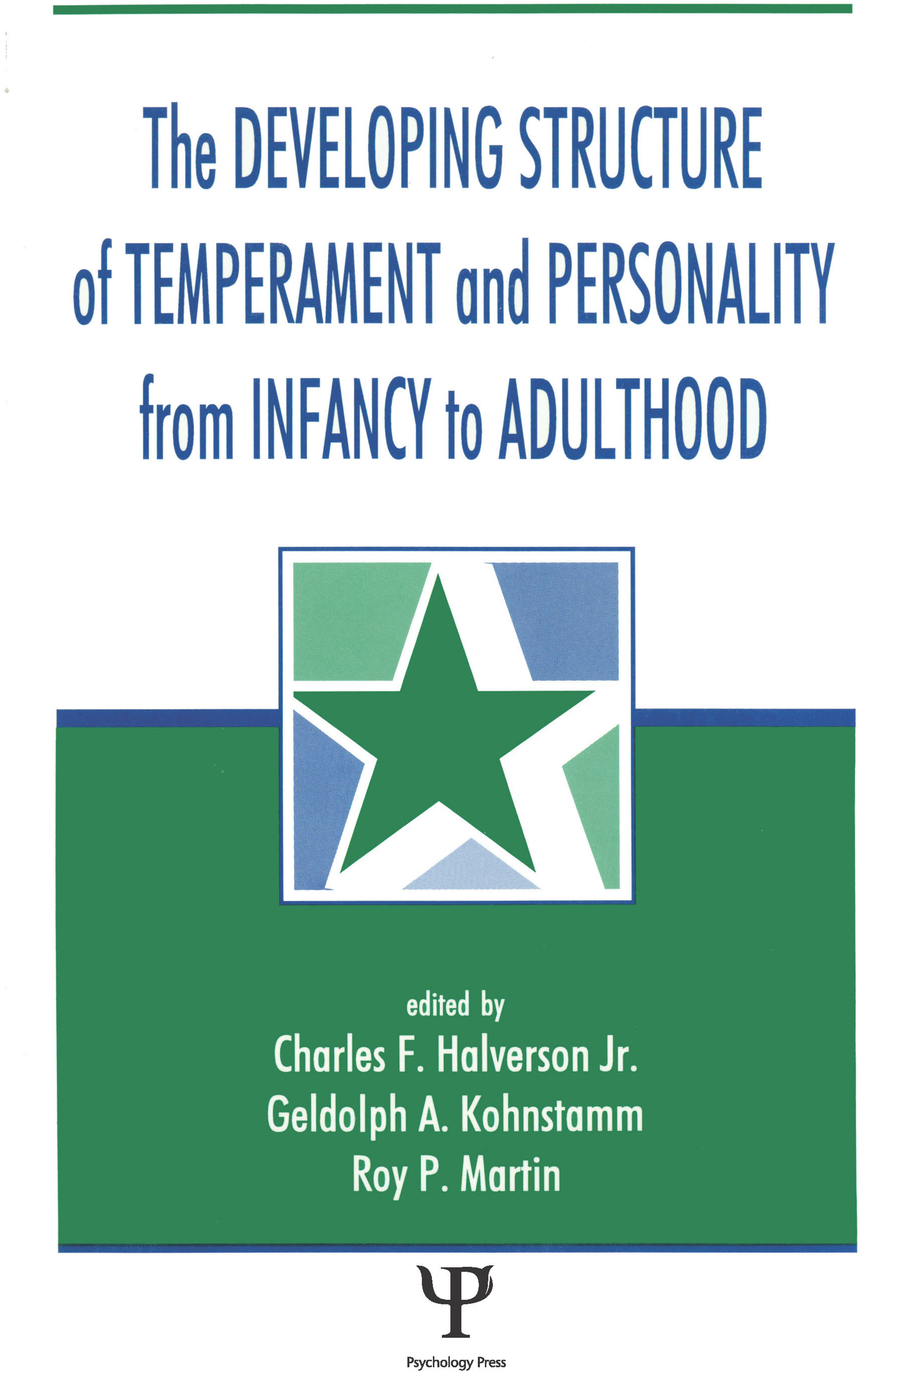 The Developing Structure of Temperament and Personality From Infancy To Adulthood